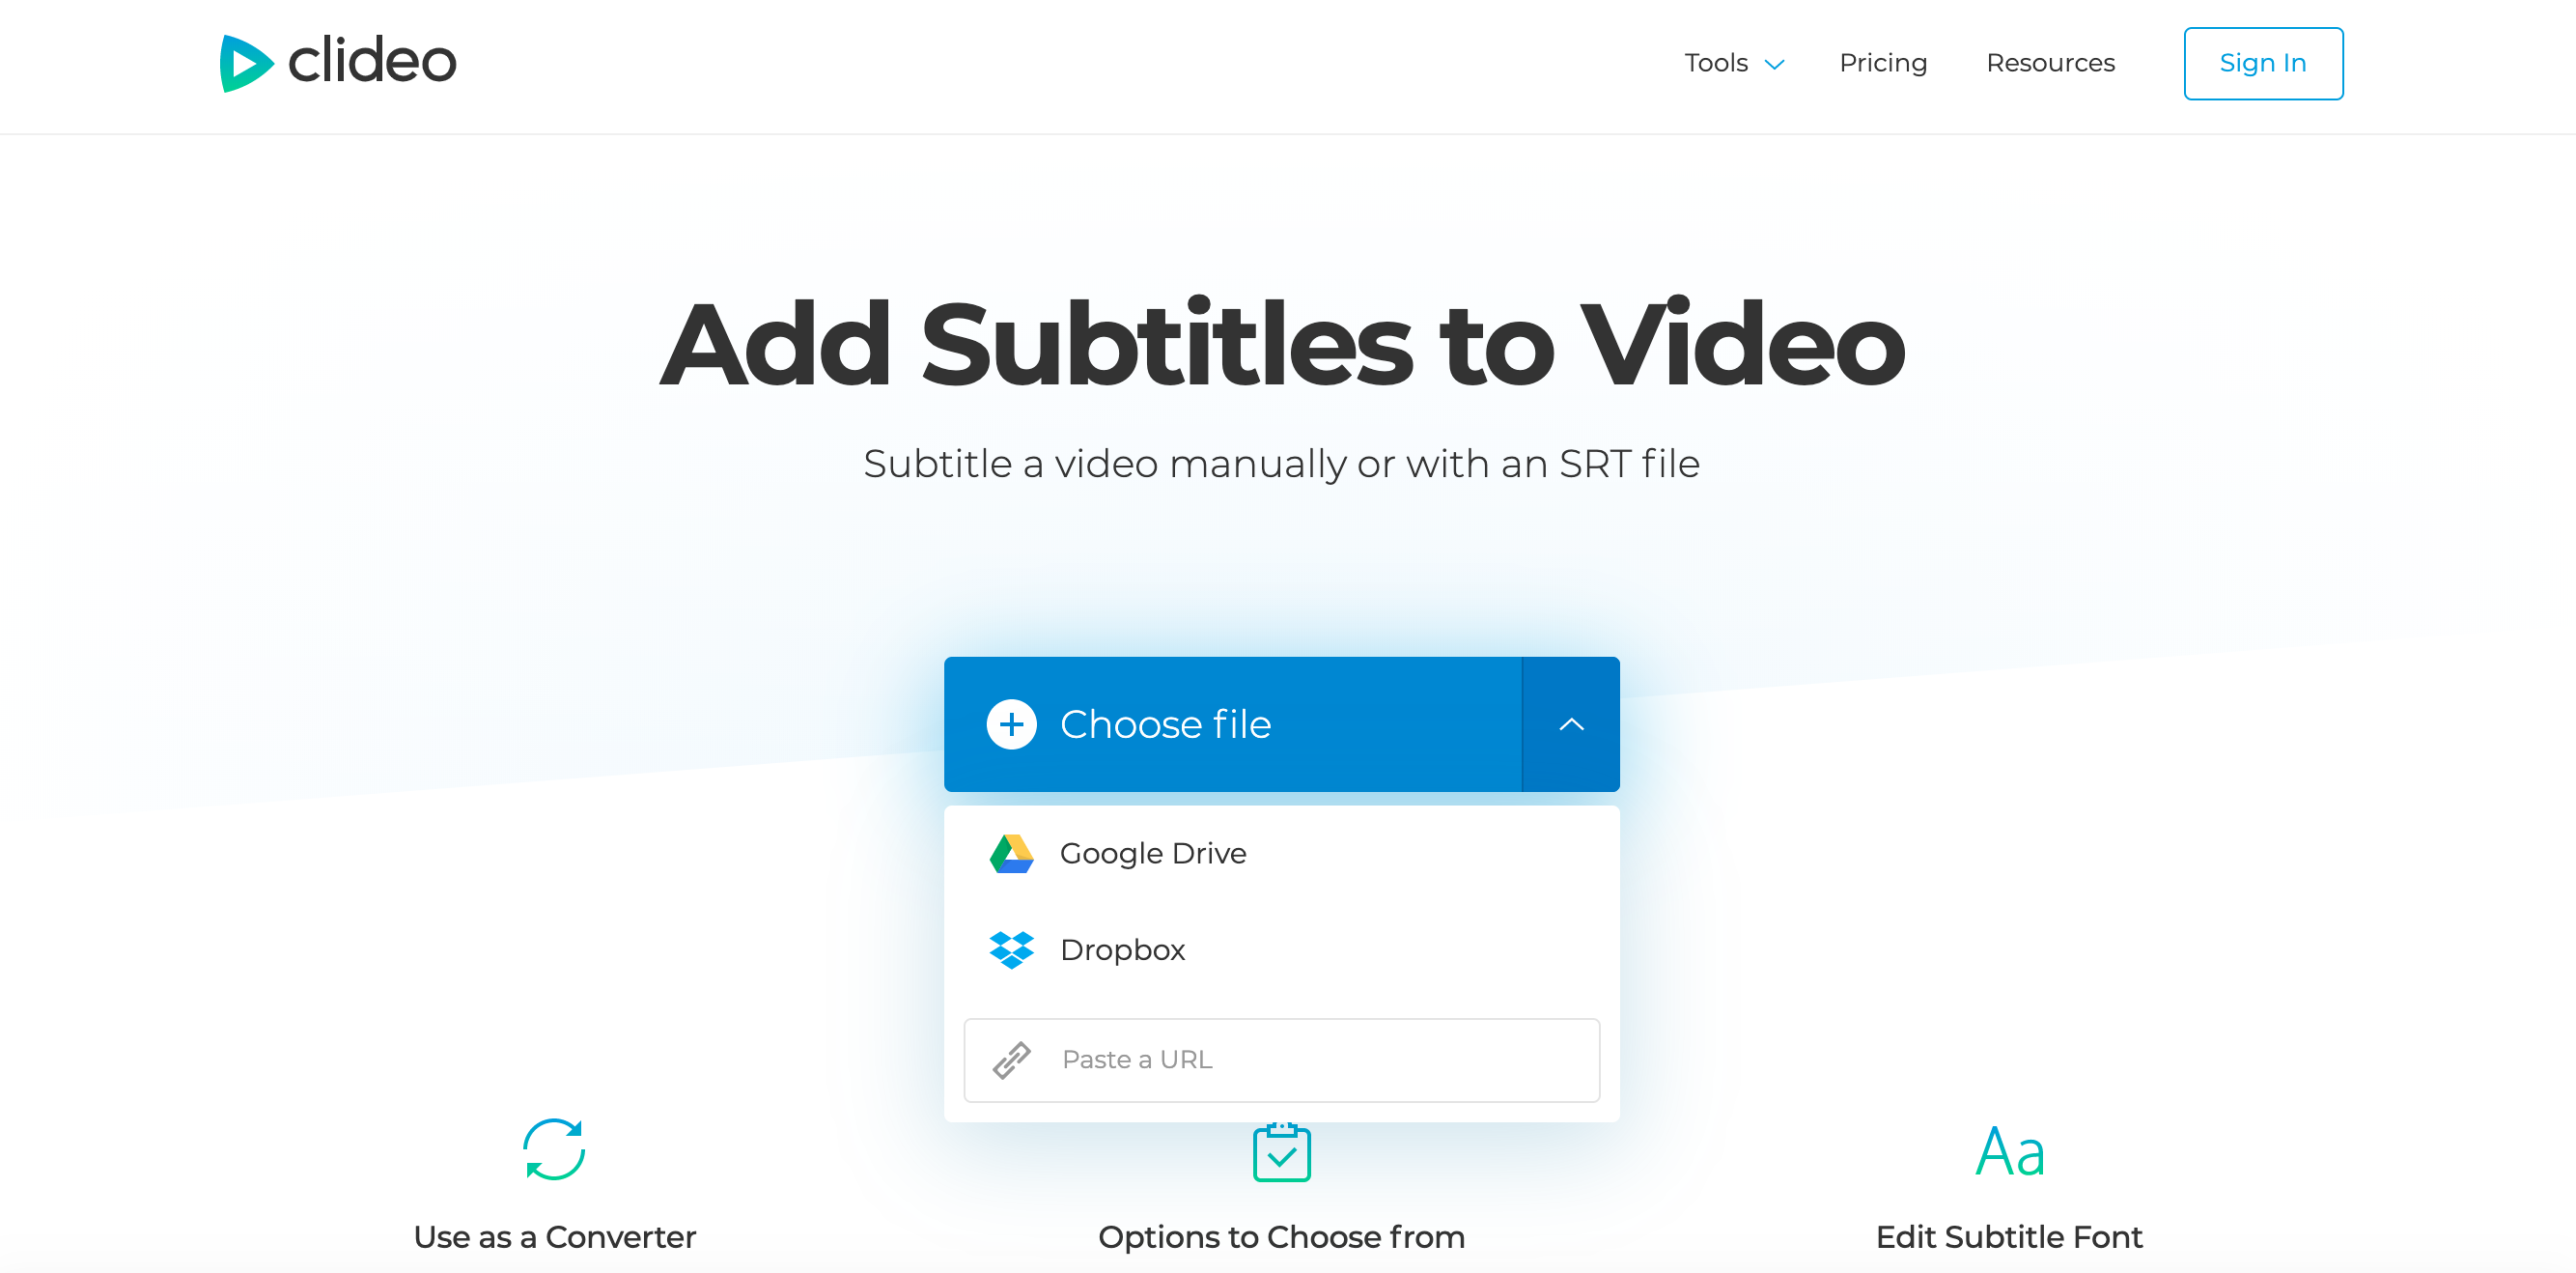 Upload a video to add subtitles